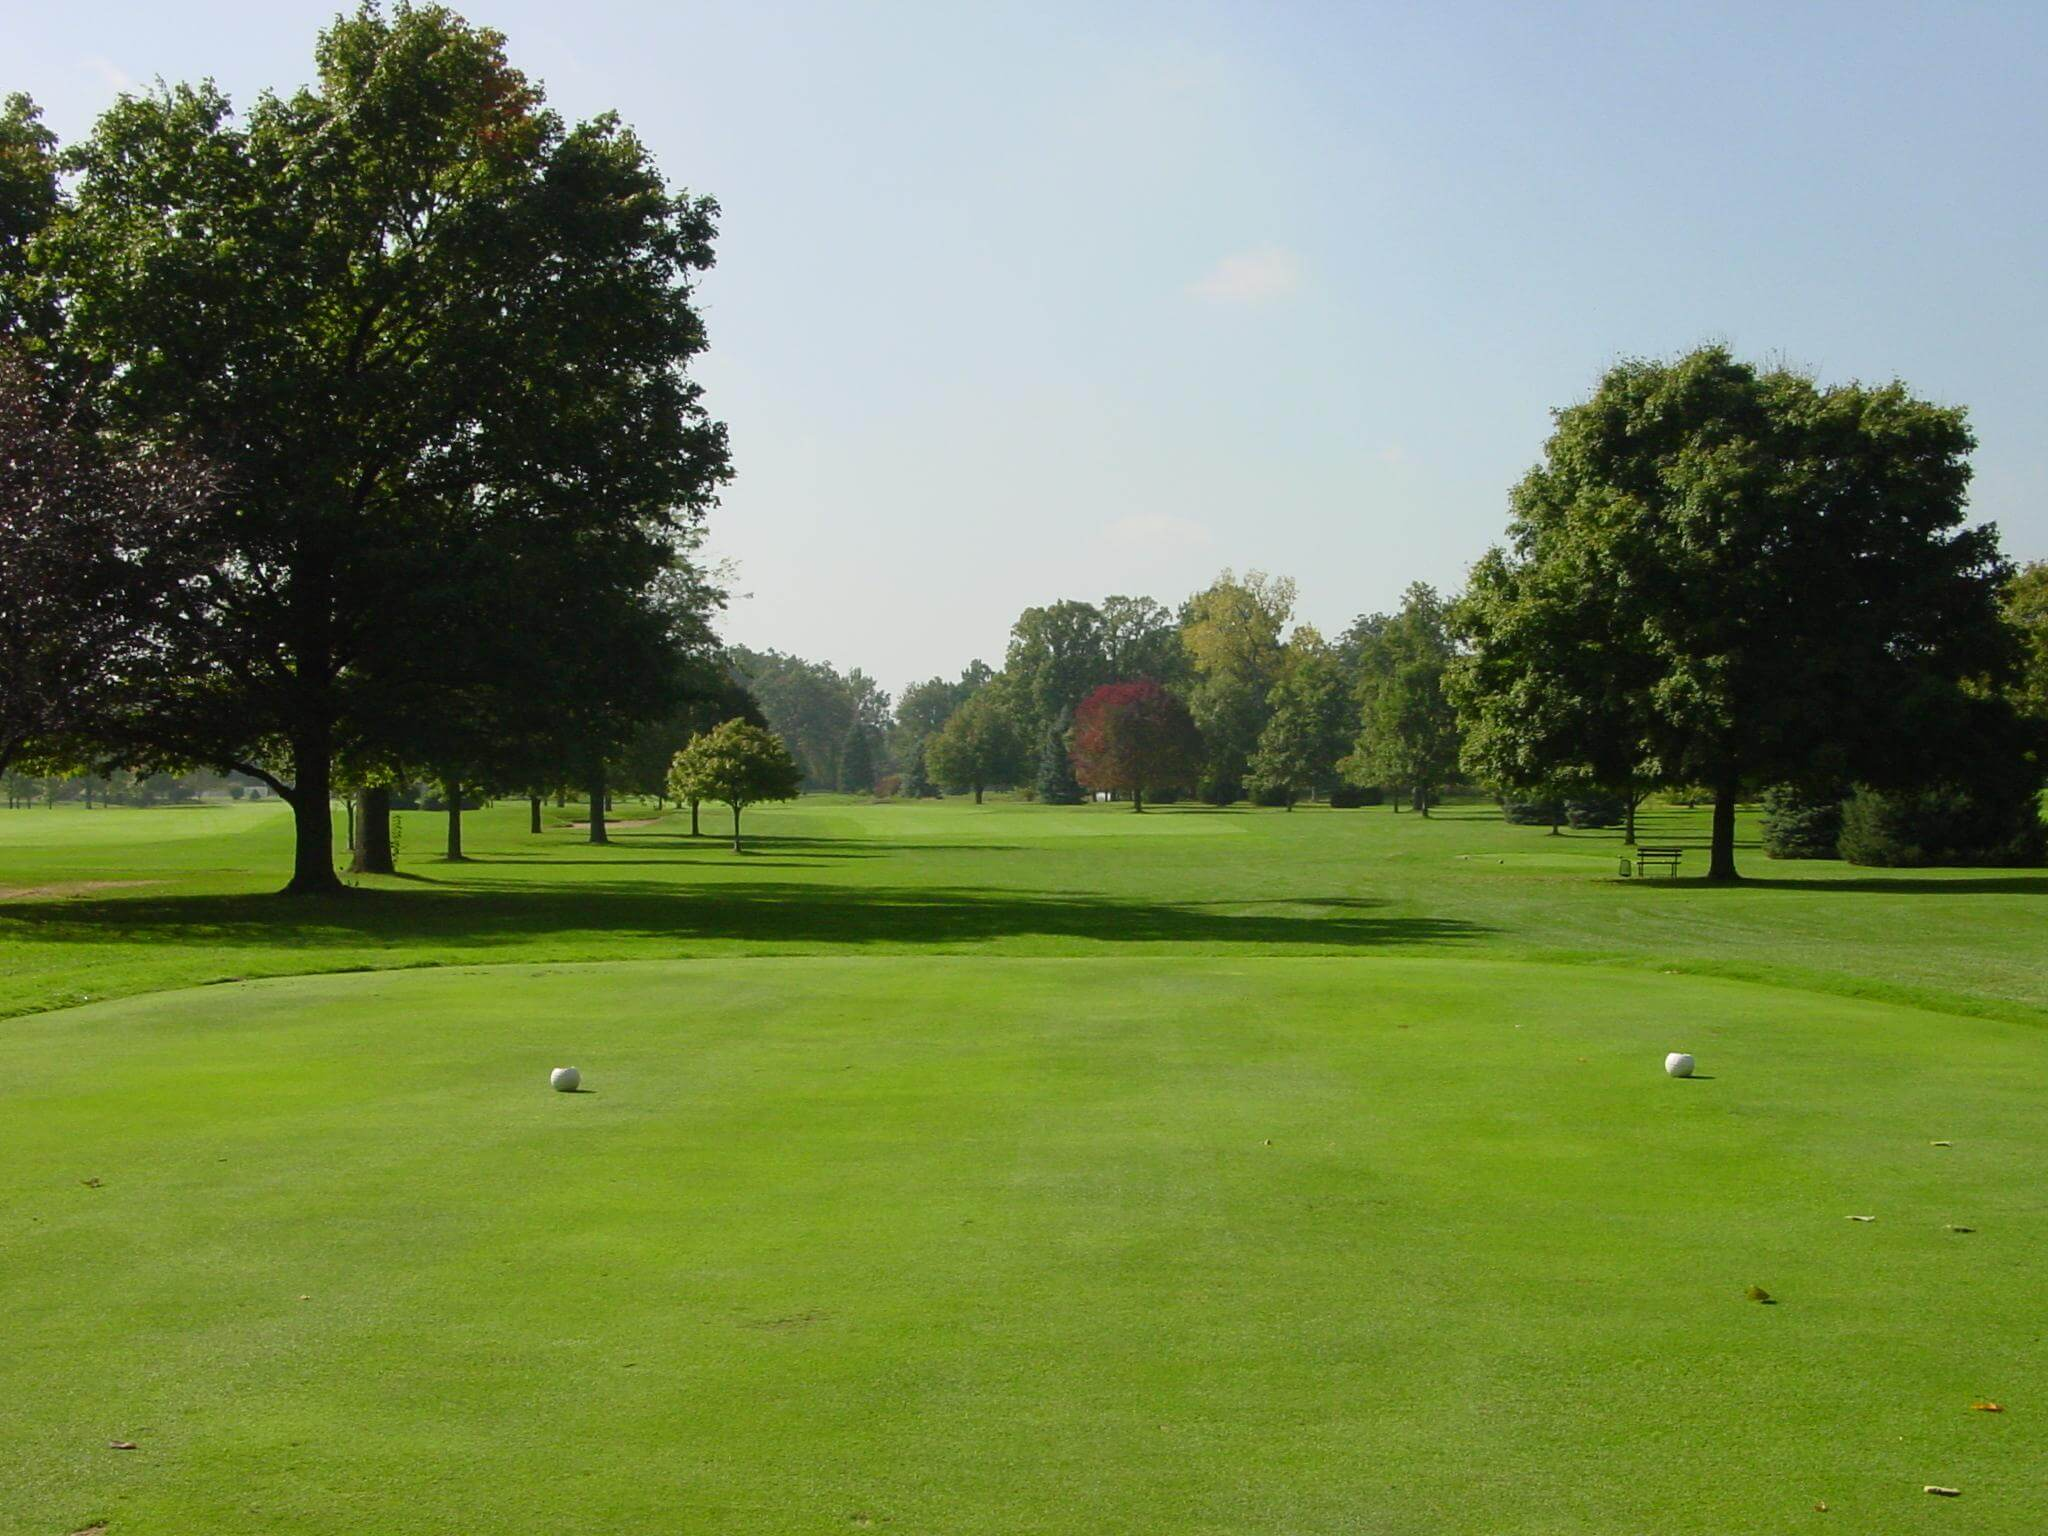 Hole 18 on the golf course